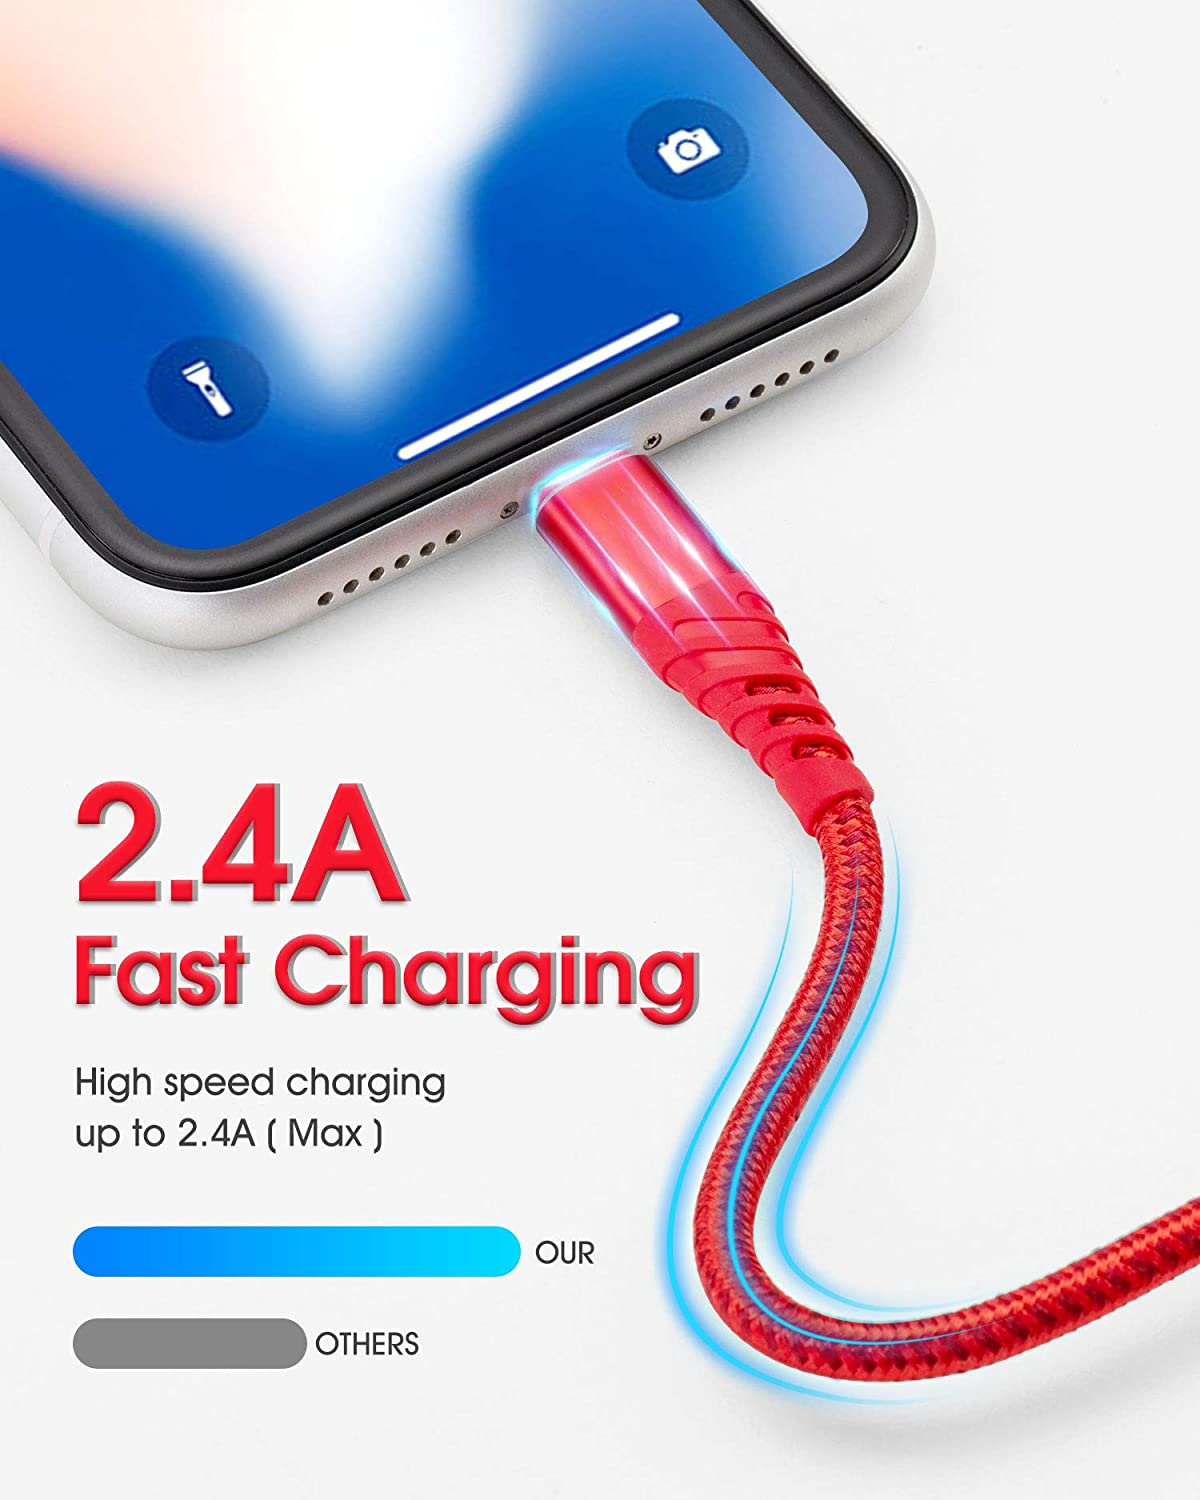 10ft iPhone Charger, 2 Pack Lightning Cable 10 Foot Nylon Braided USB Charging & Syncing Long iPhone Charger Cord 10 feet Compatible with iPhone Xs/XR/XS Max/X/7/7Plus/8/8Plus/6S/6SPlus